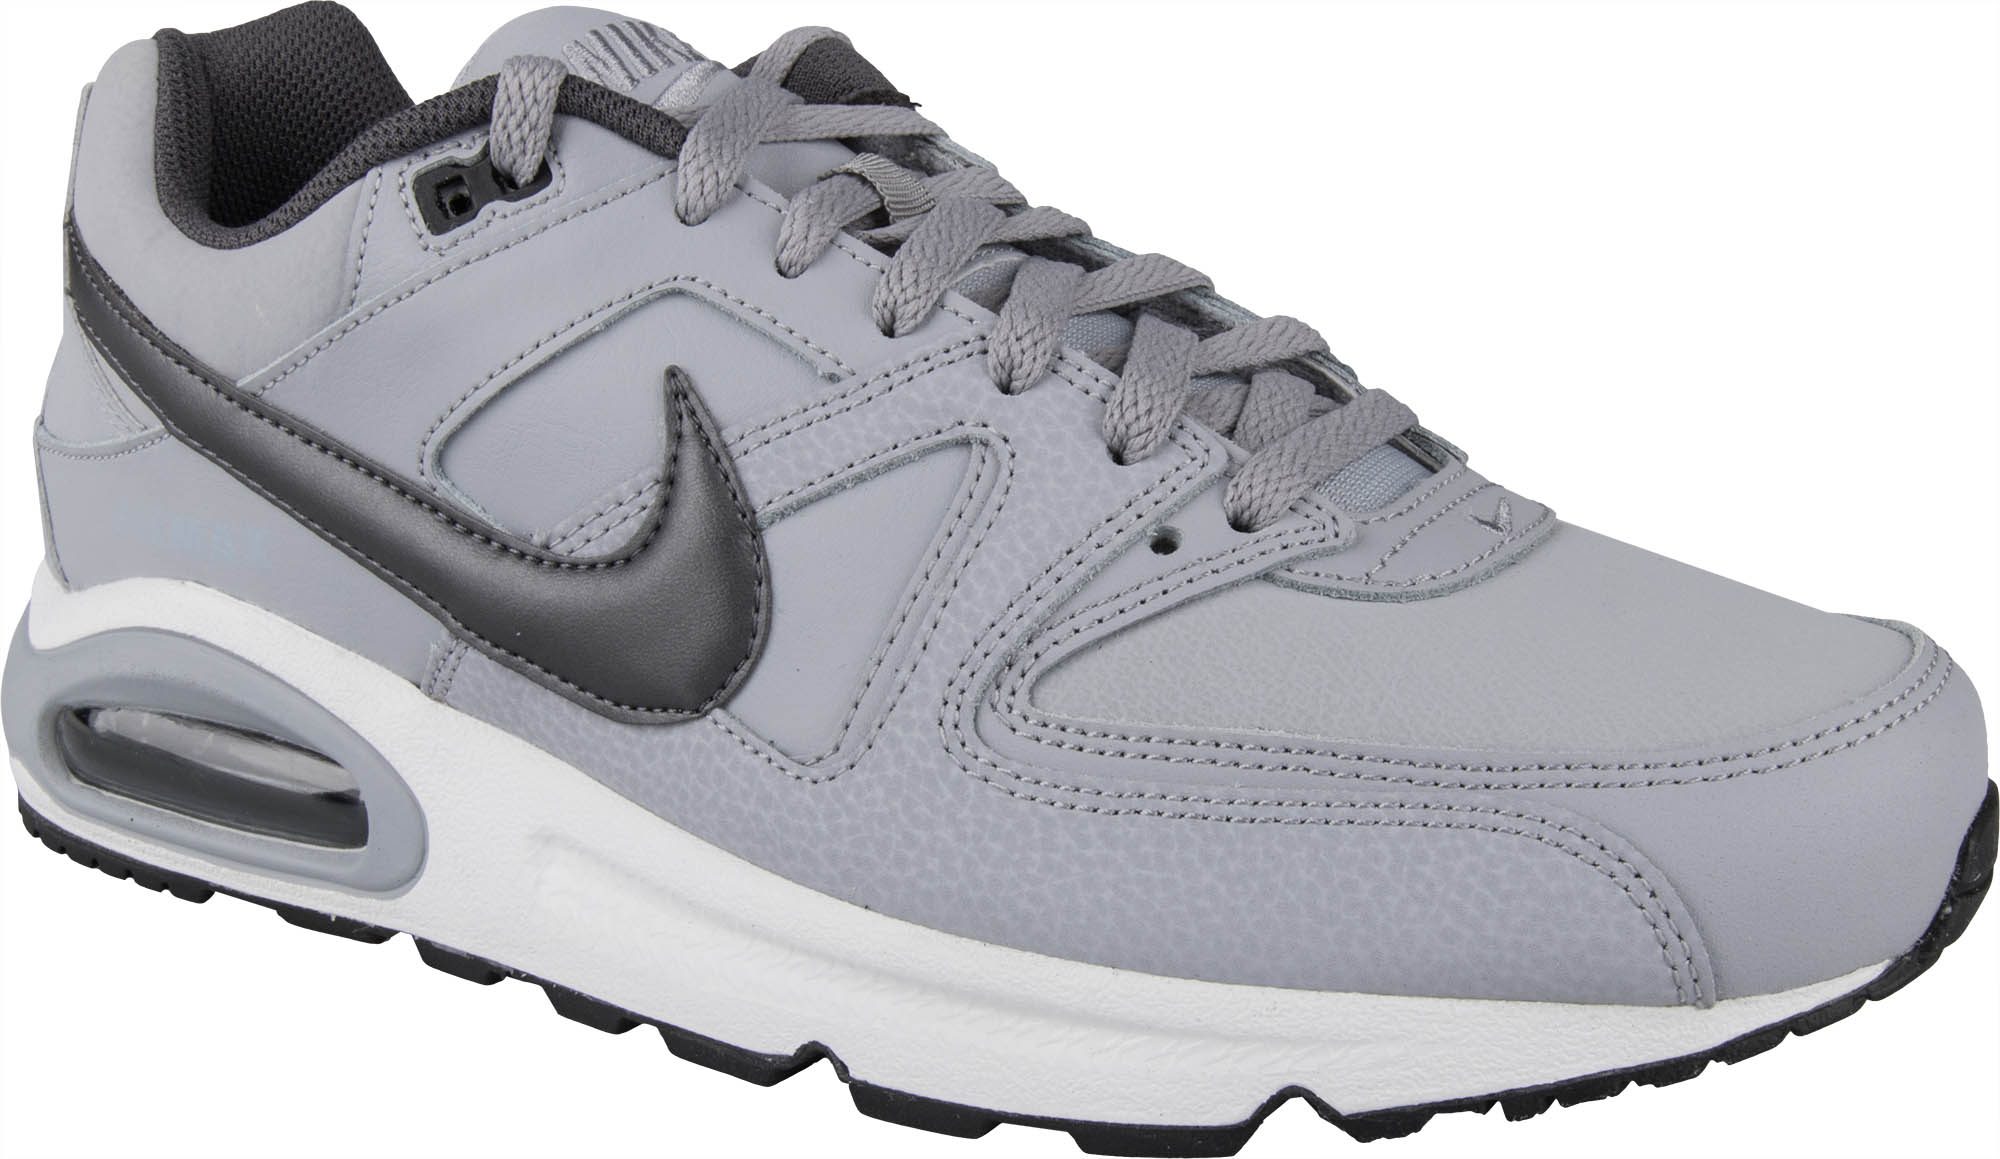 meilleur service 2c449 af5f3 Nike AIR MAX COMMAND LEATHER   sportisimo.bg